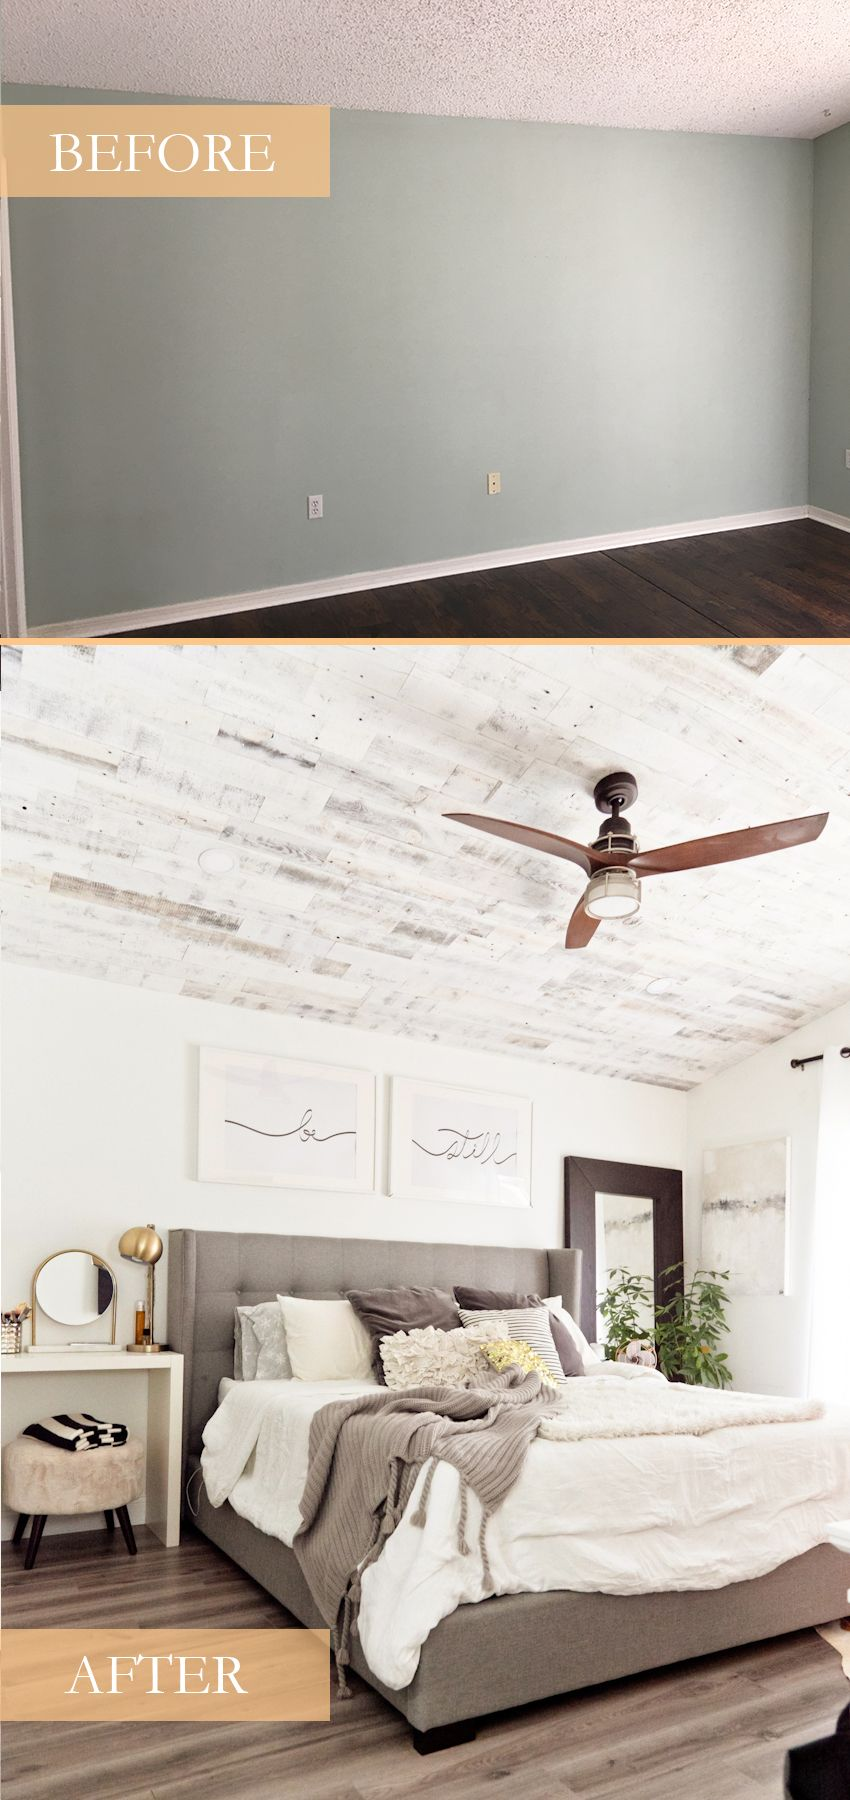 How to Install your Own Reclaimed Wood Ceiling – our Master Bedroom Update images